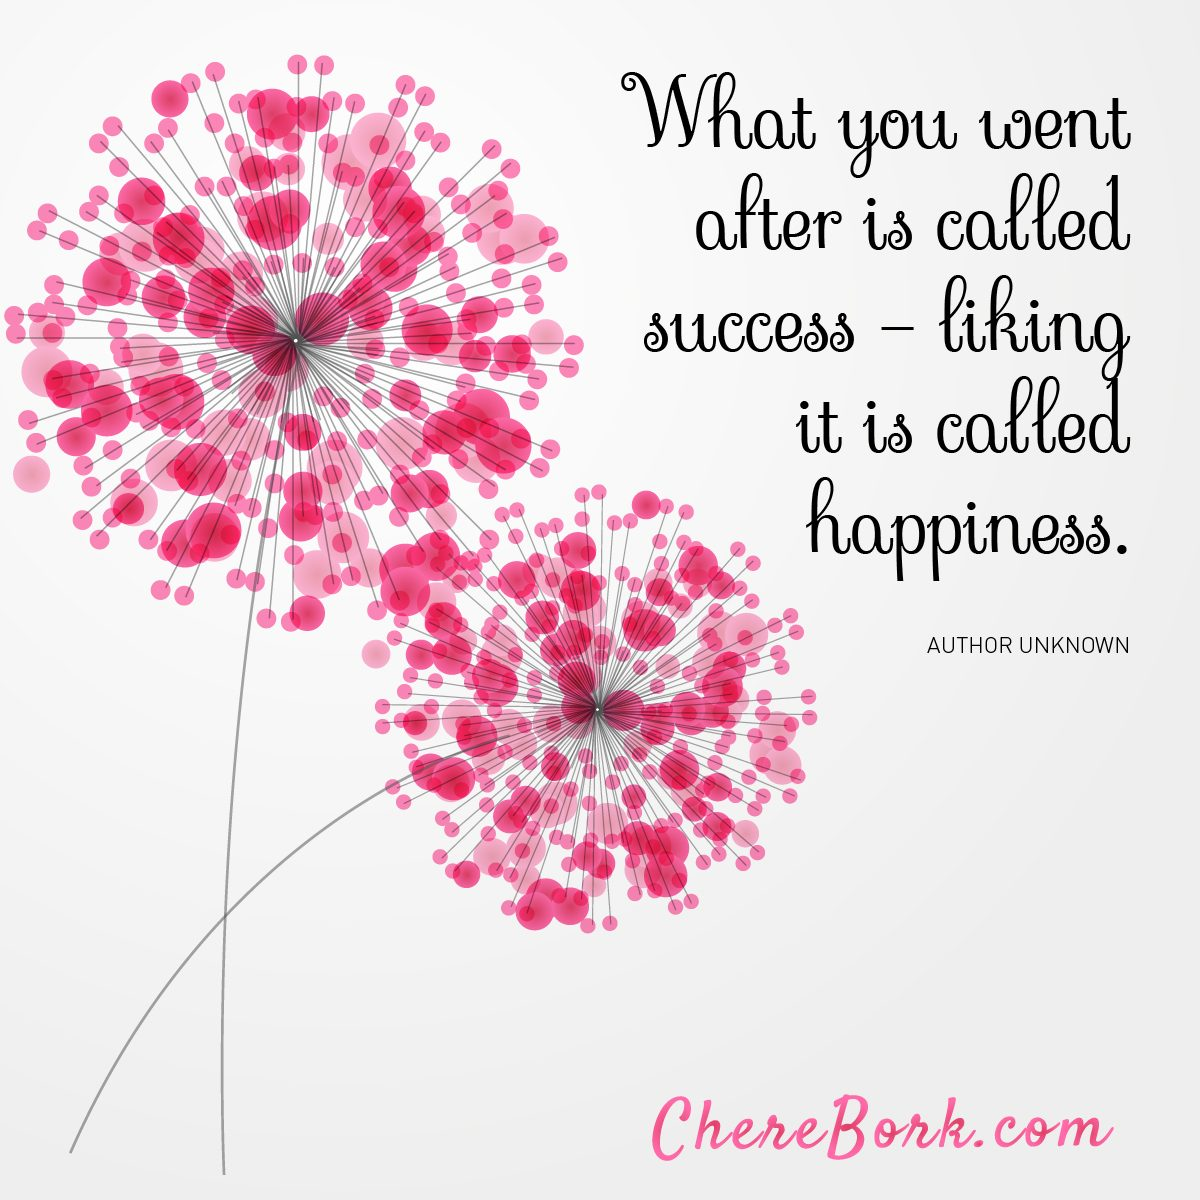 What you went after is called success —Liking it is called happiness. -Author Unknown